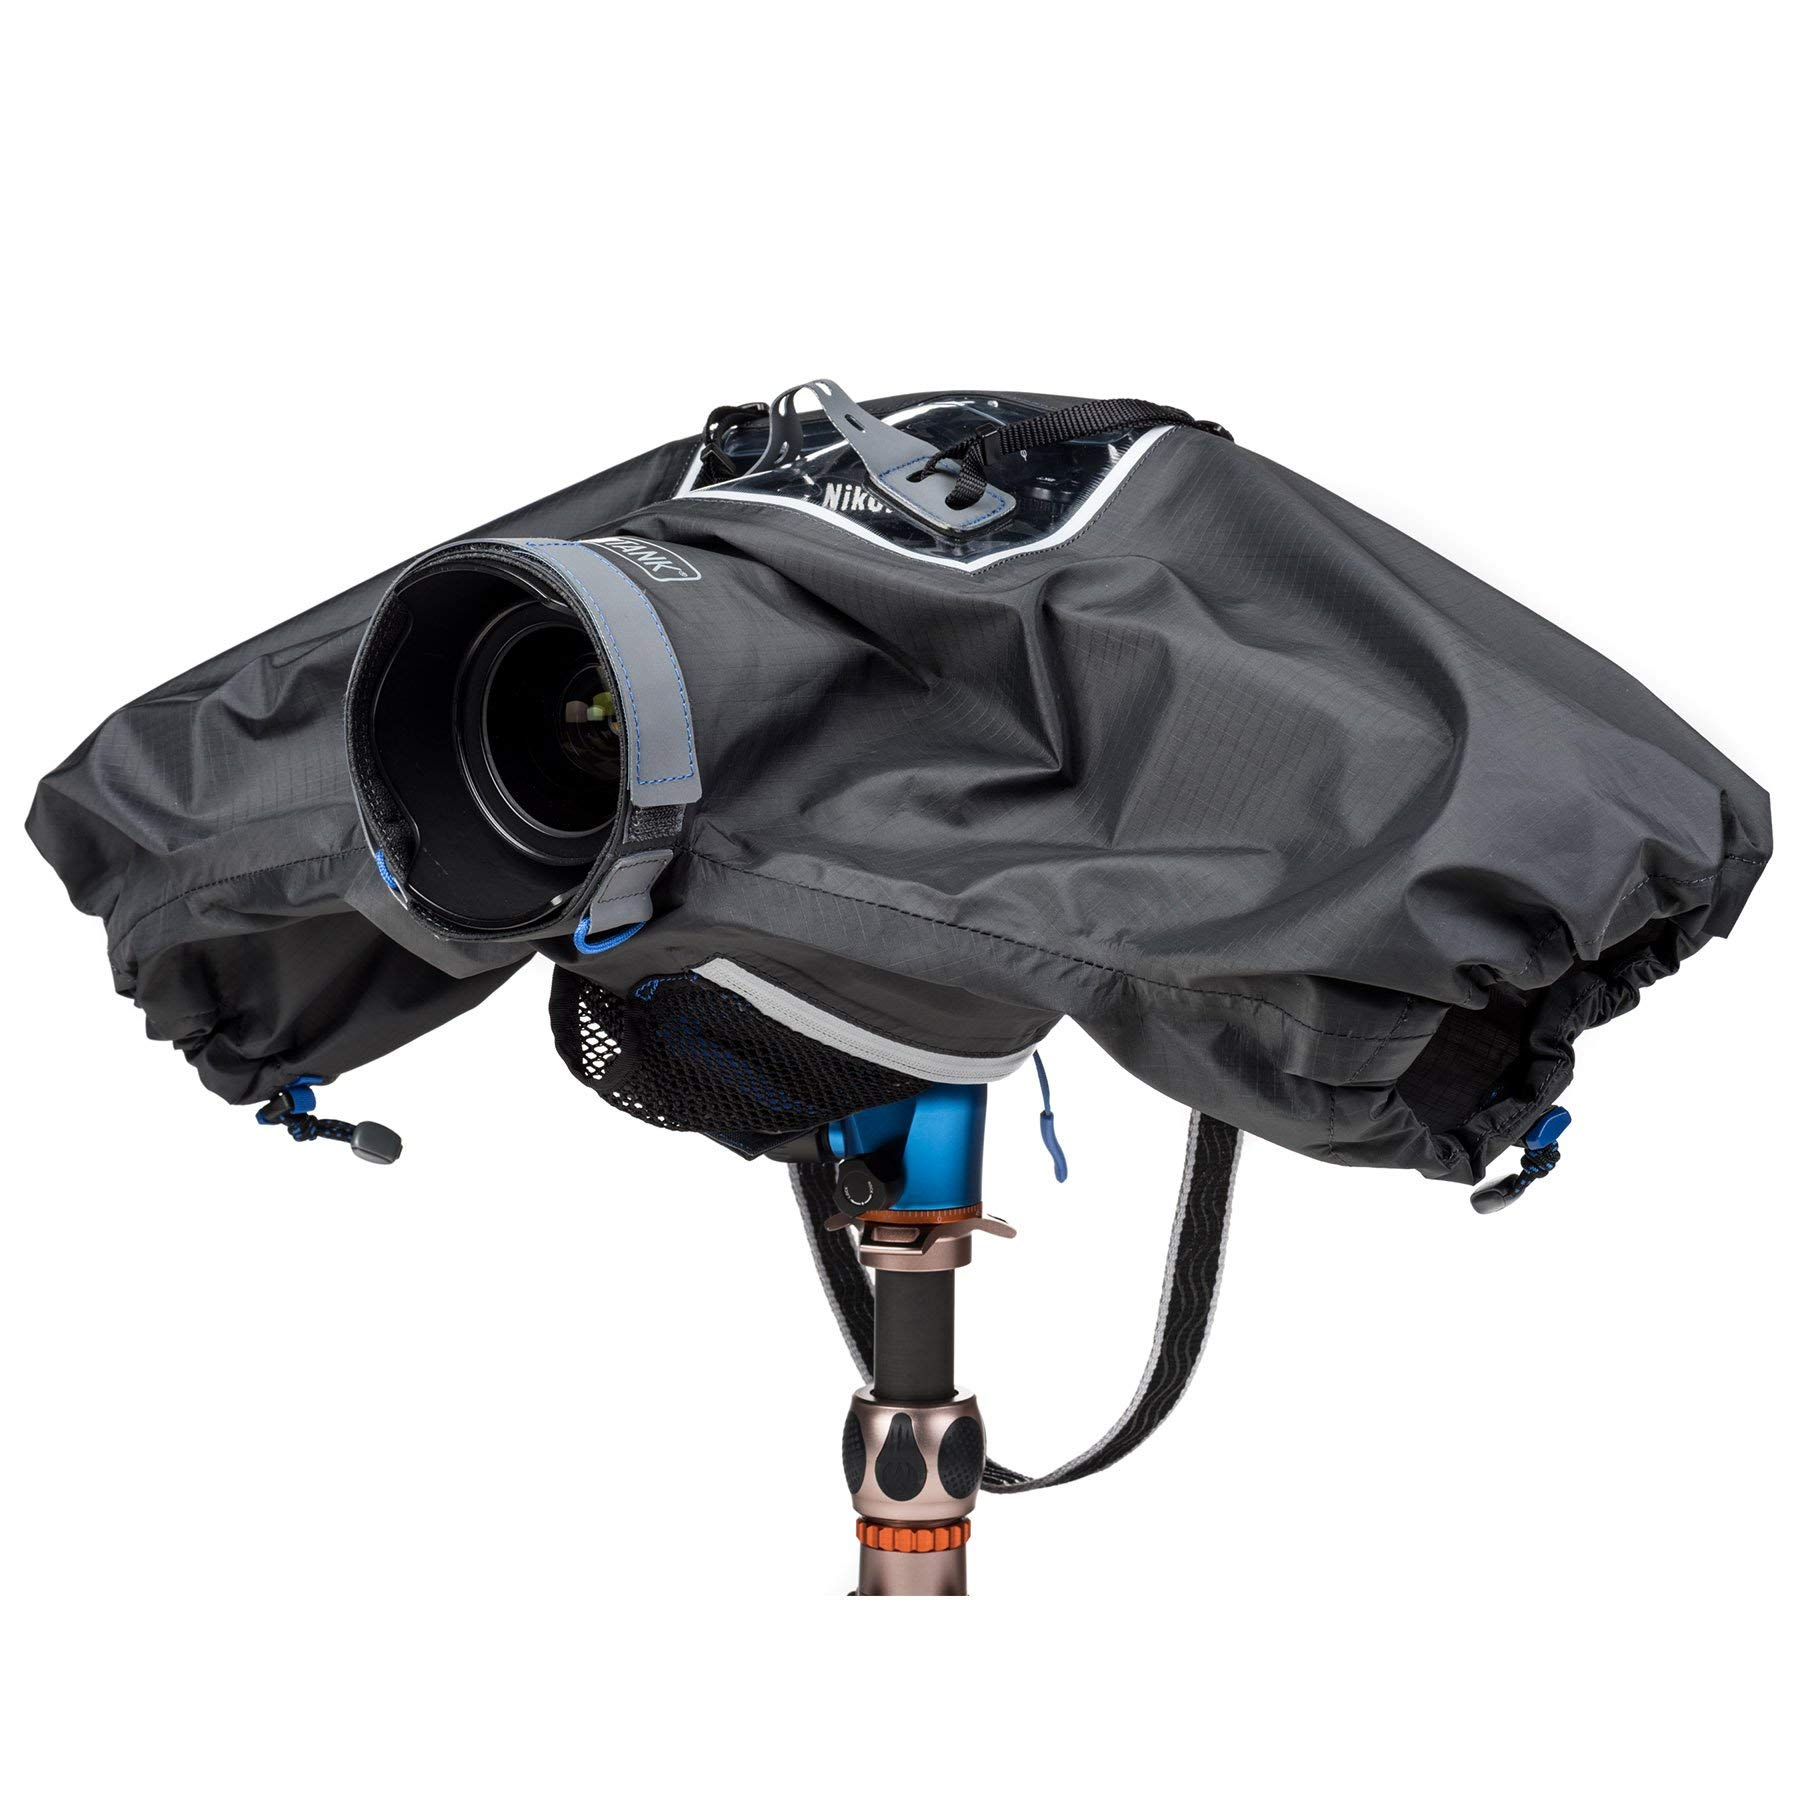 Think Tank Photo Hydrophobia D 24-70 V3 Camera Rain Cover for DSLR Camera with 24-70mm f/2.8 Lens by Think Tank (Image #3)